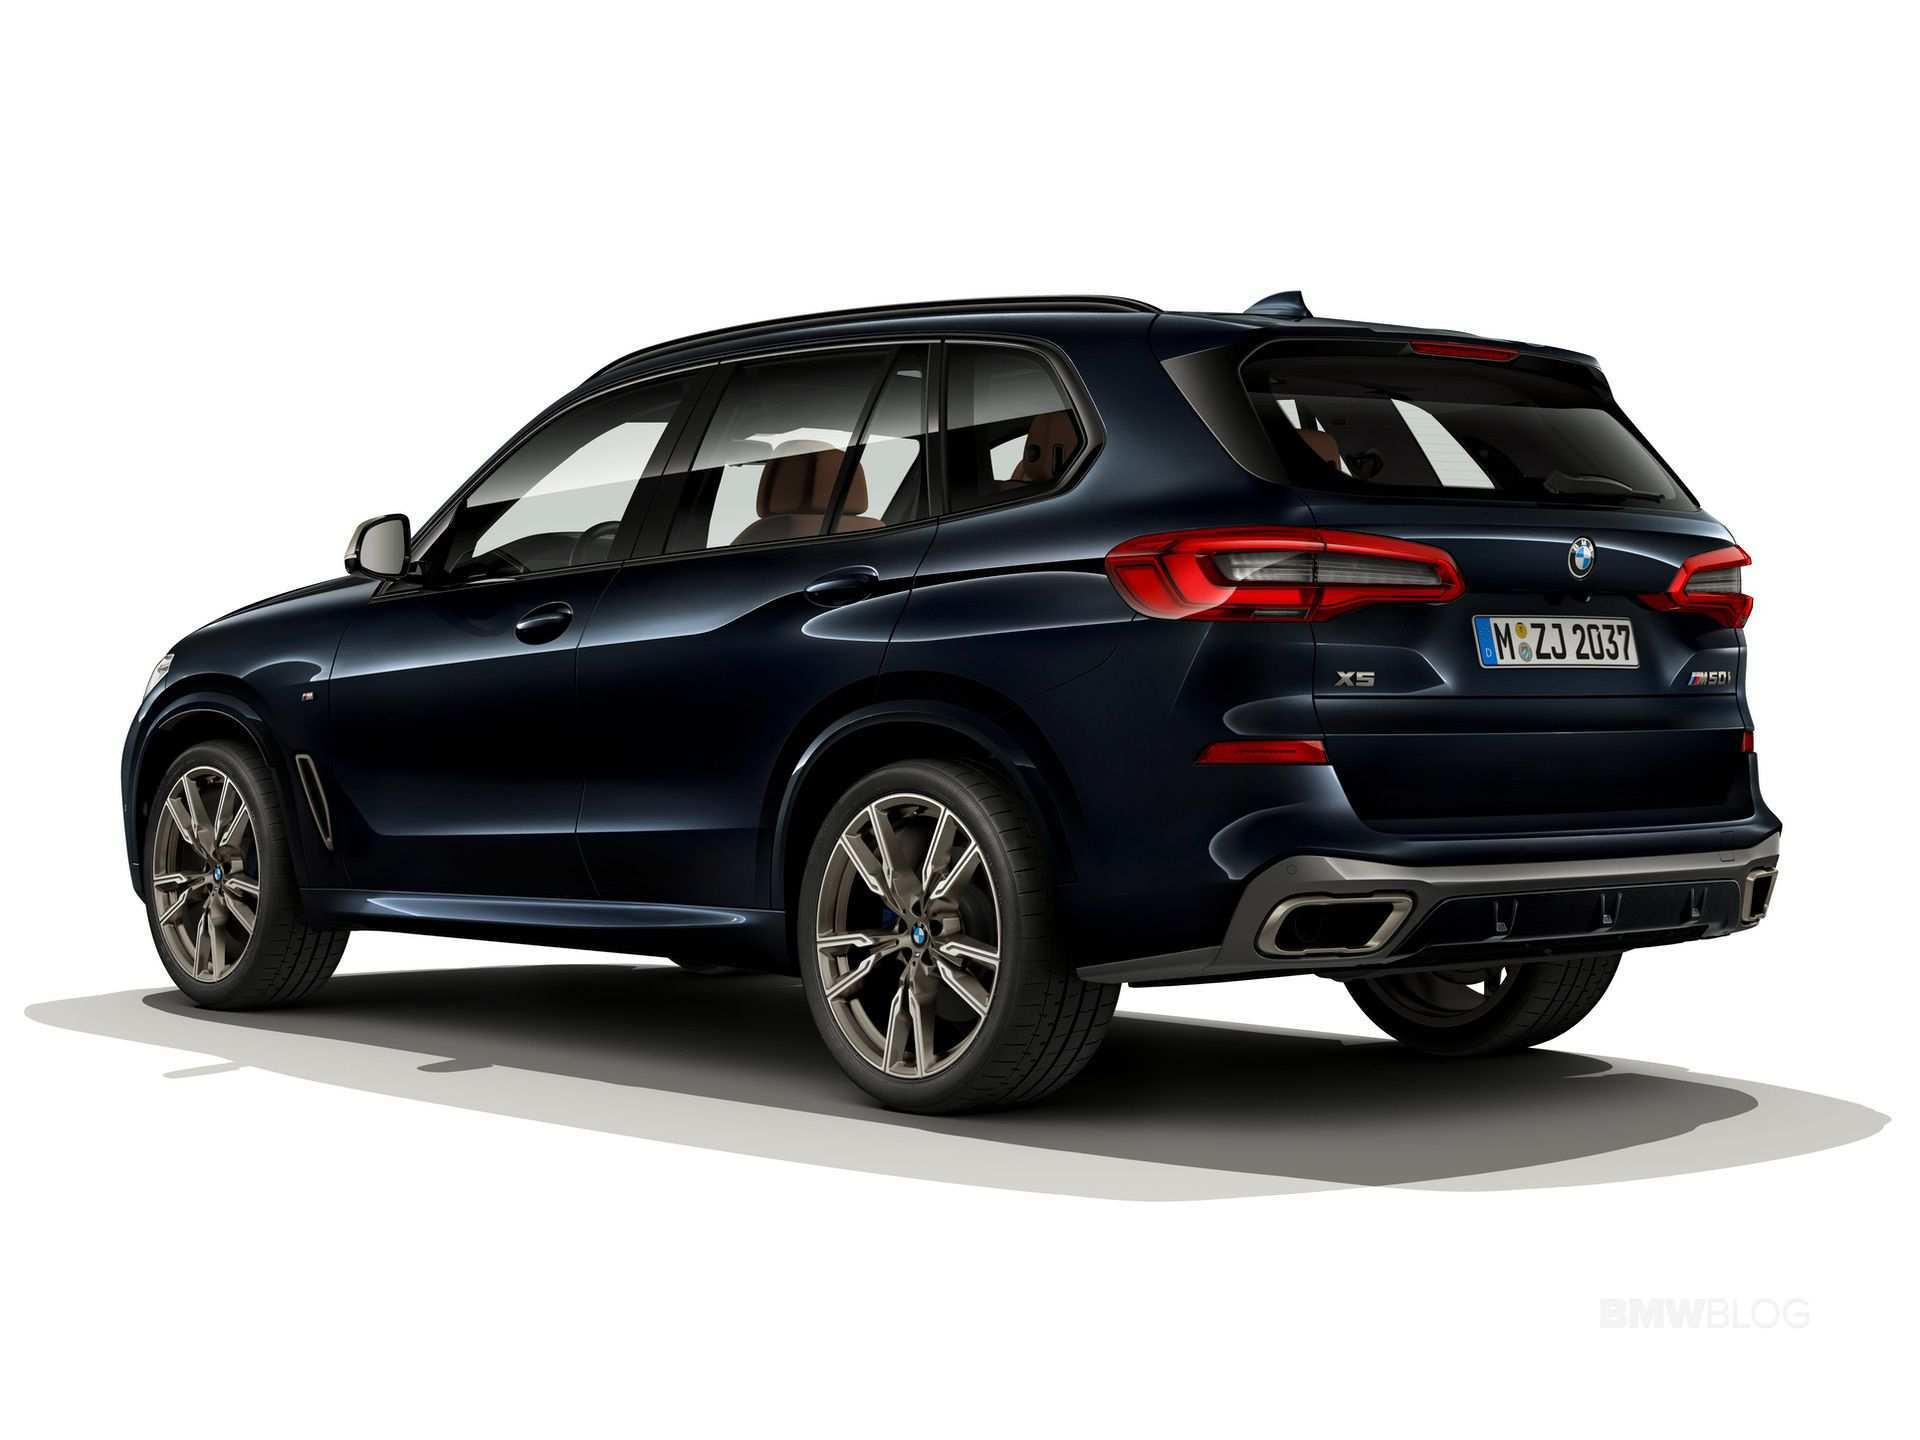 96 The Best 2020 BMW X5 Price And Release Date